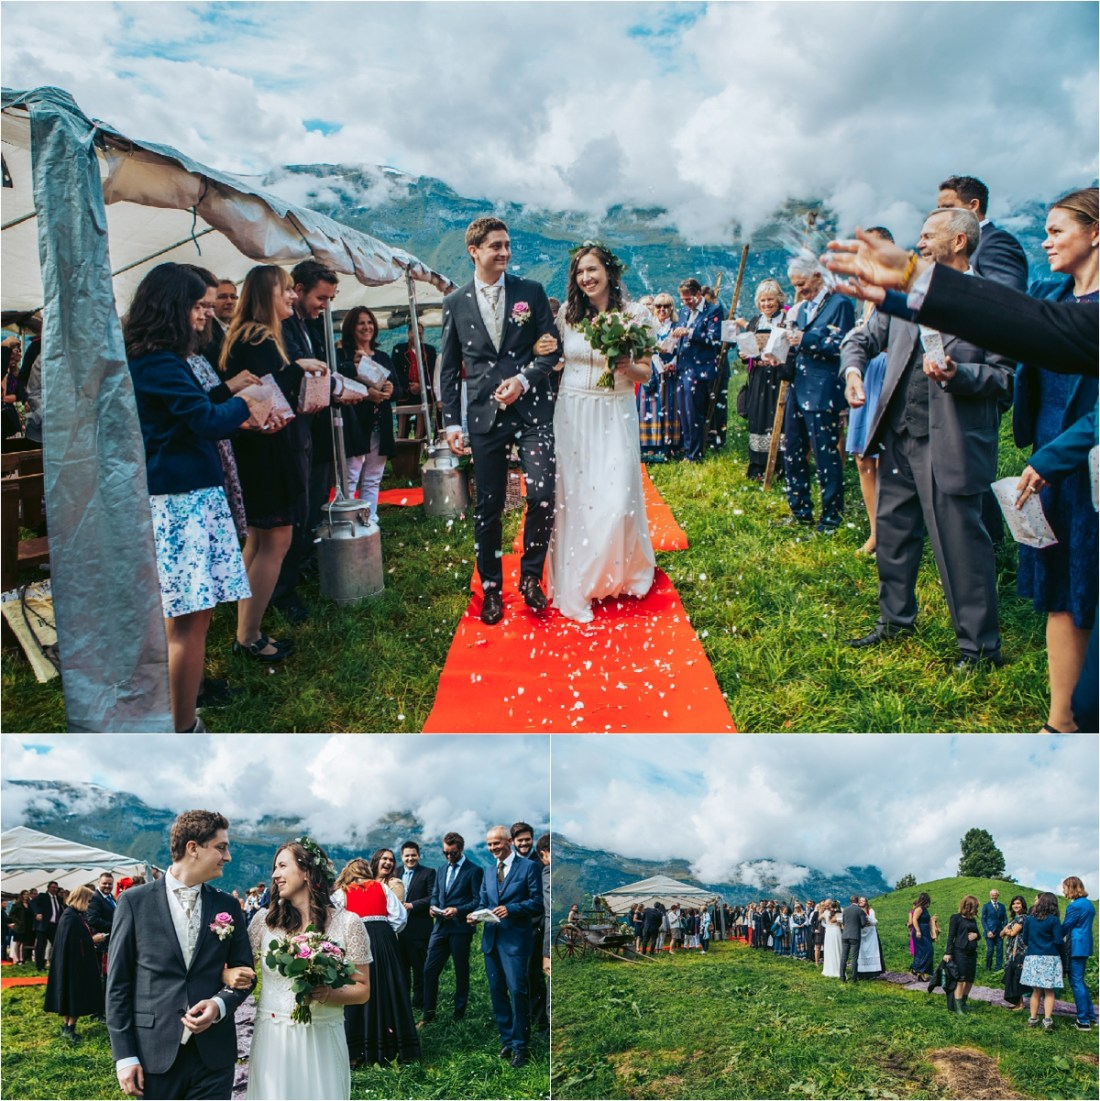 The bride and groom walk down a red carpet as confetti is thrown in Norway by Fotograf Lene Fossdal